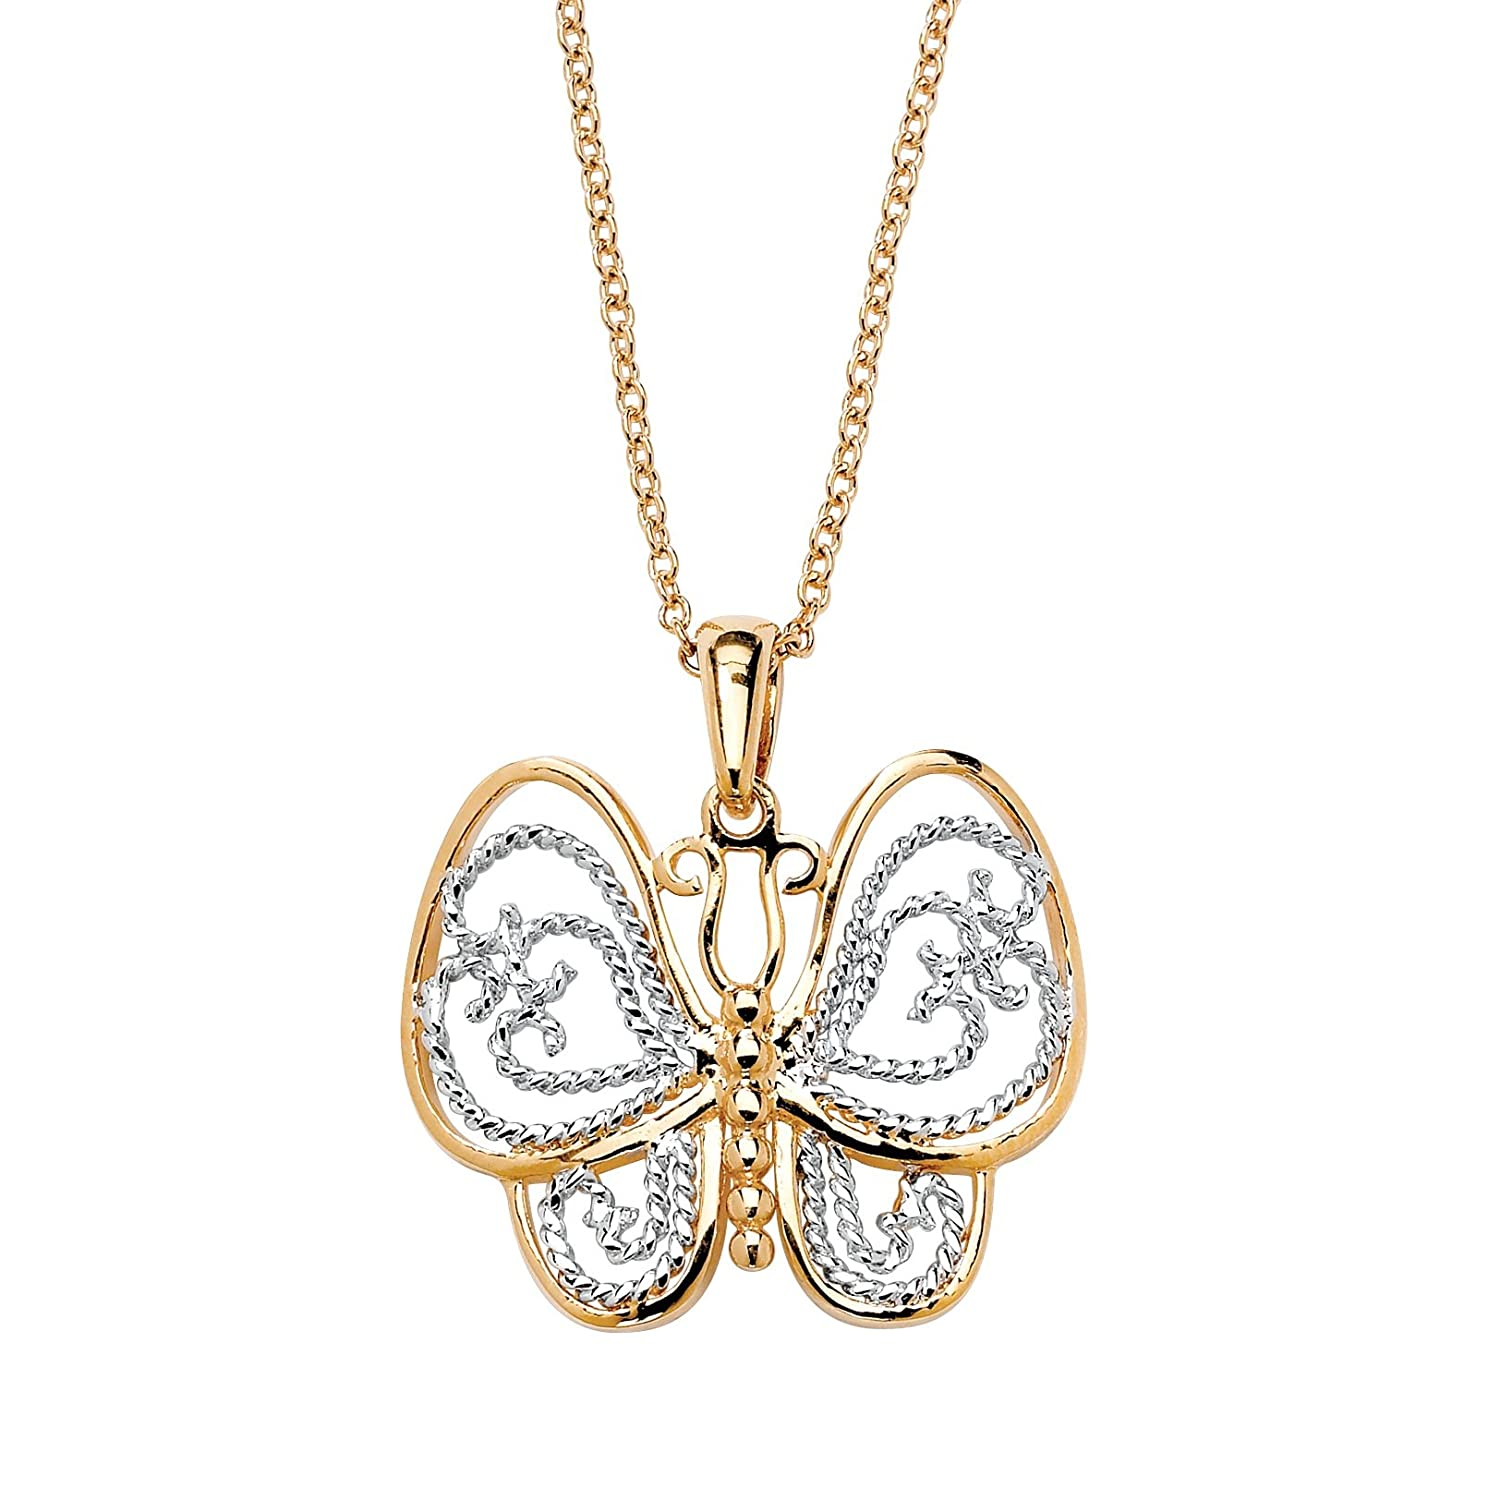 Lux 18K Yellow Gold Plated Filigree Butterfly Charm Pendant 27mm with 18 inch Chain